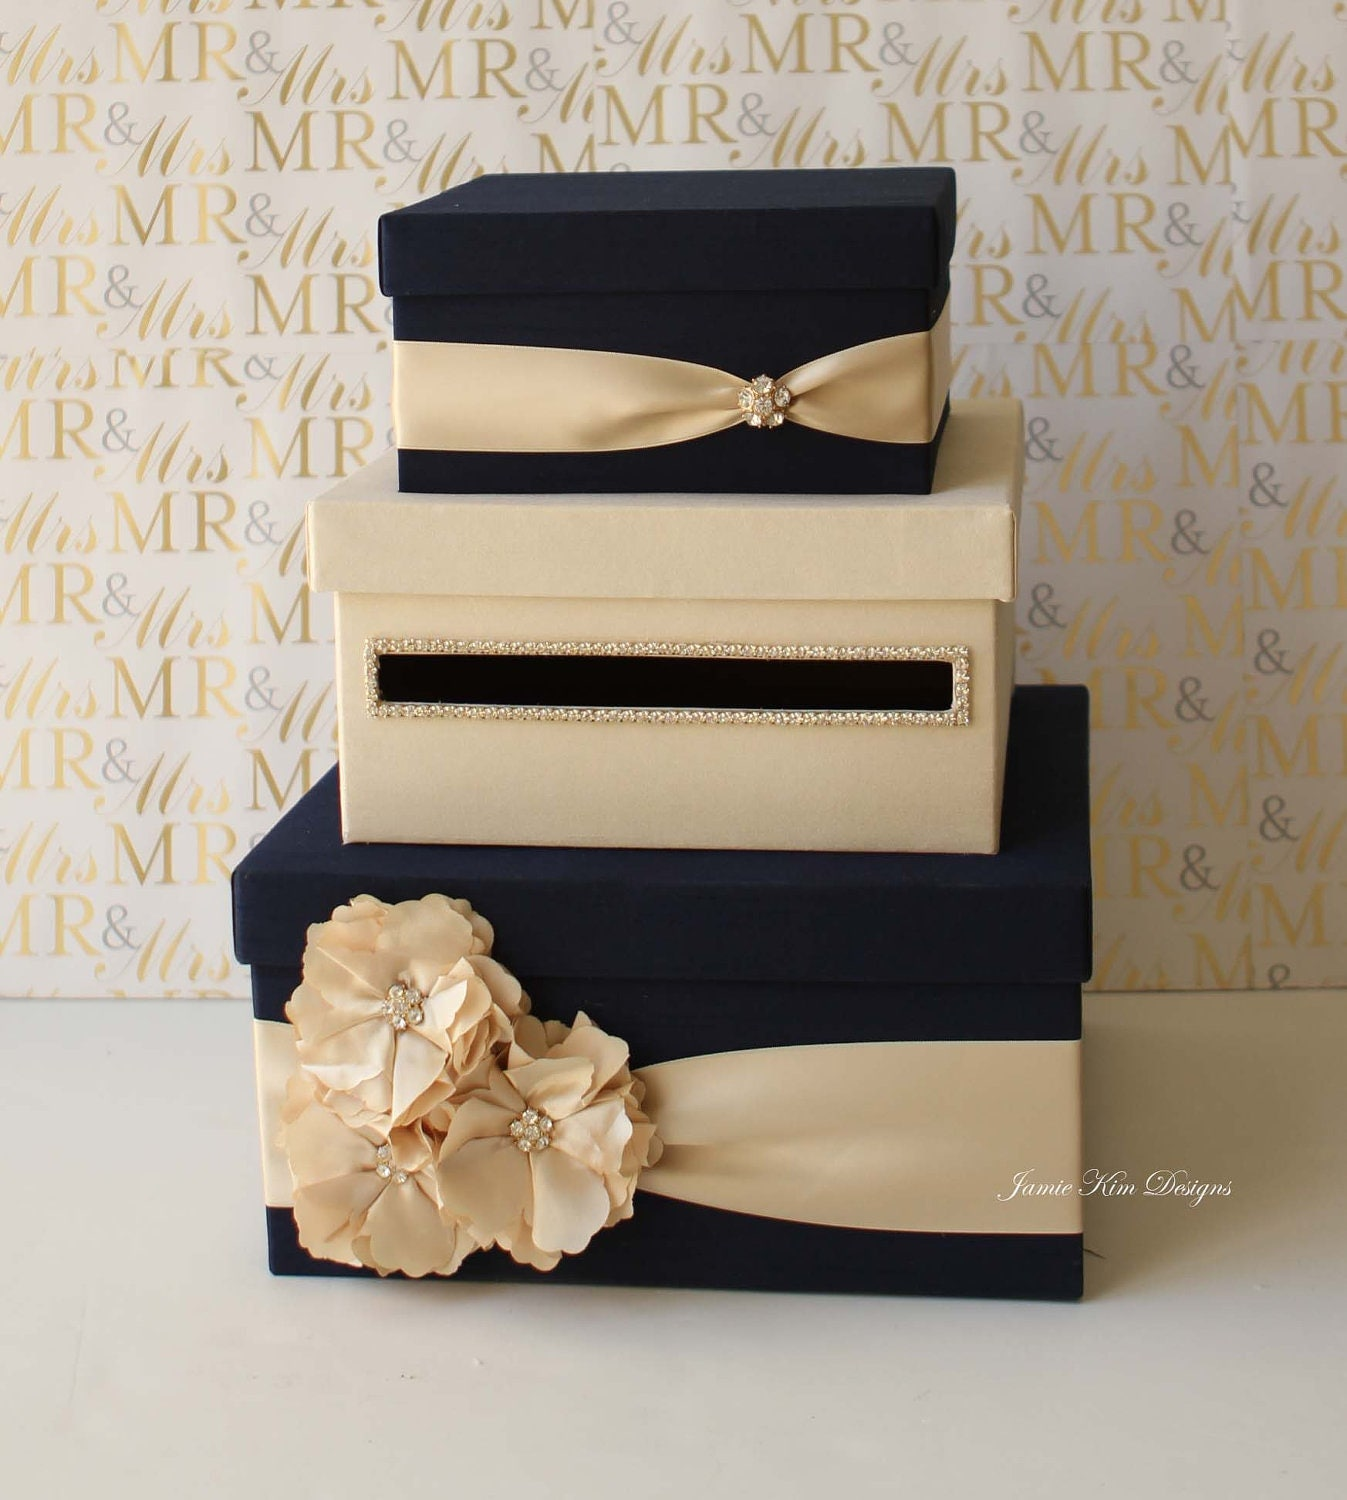 Wedding Gift Boxes Pinterest : card box wedding decorations Pinterest